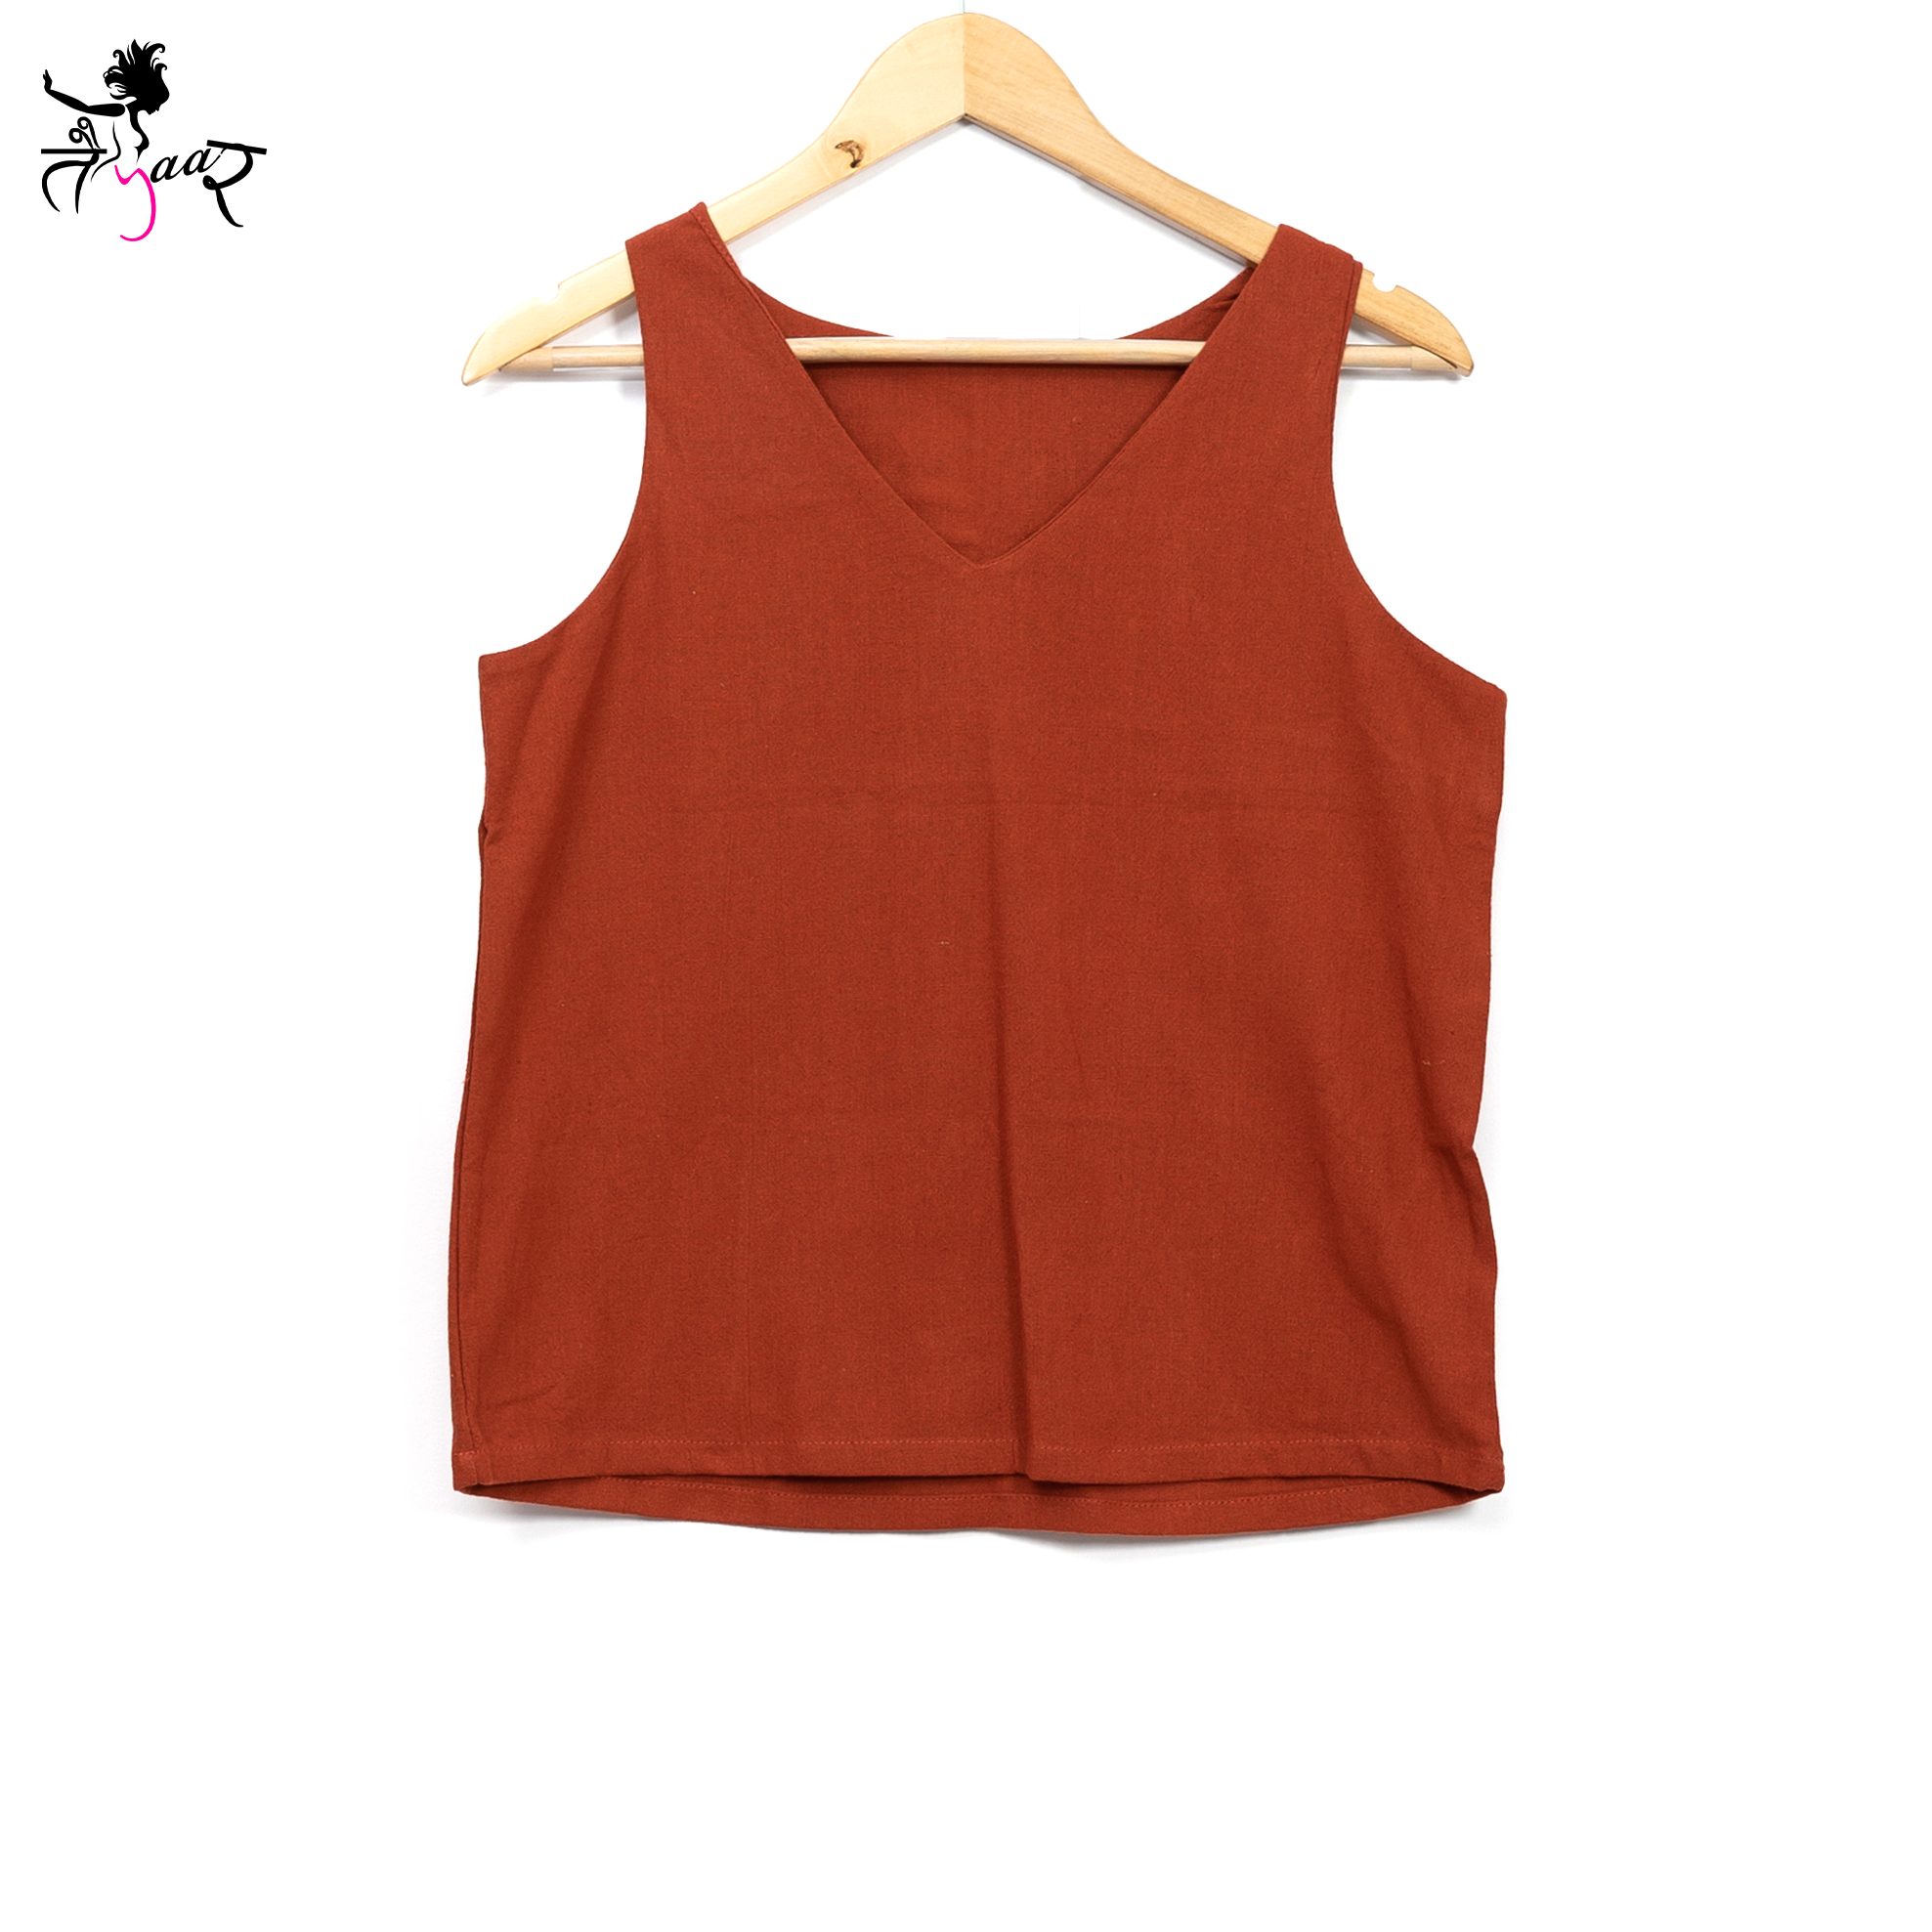 Sleeveless Organic Cotton Tops